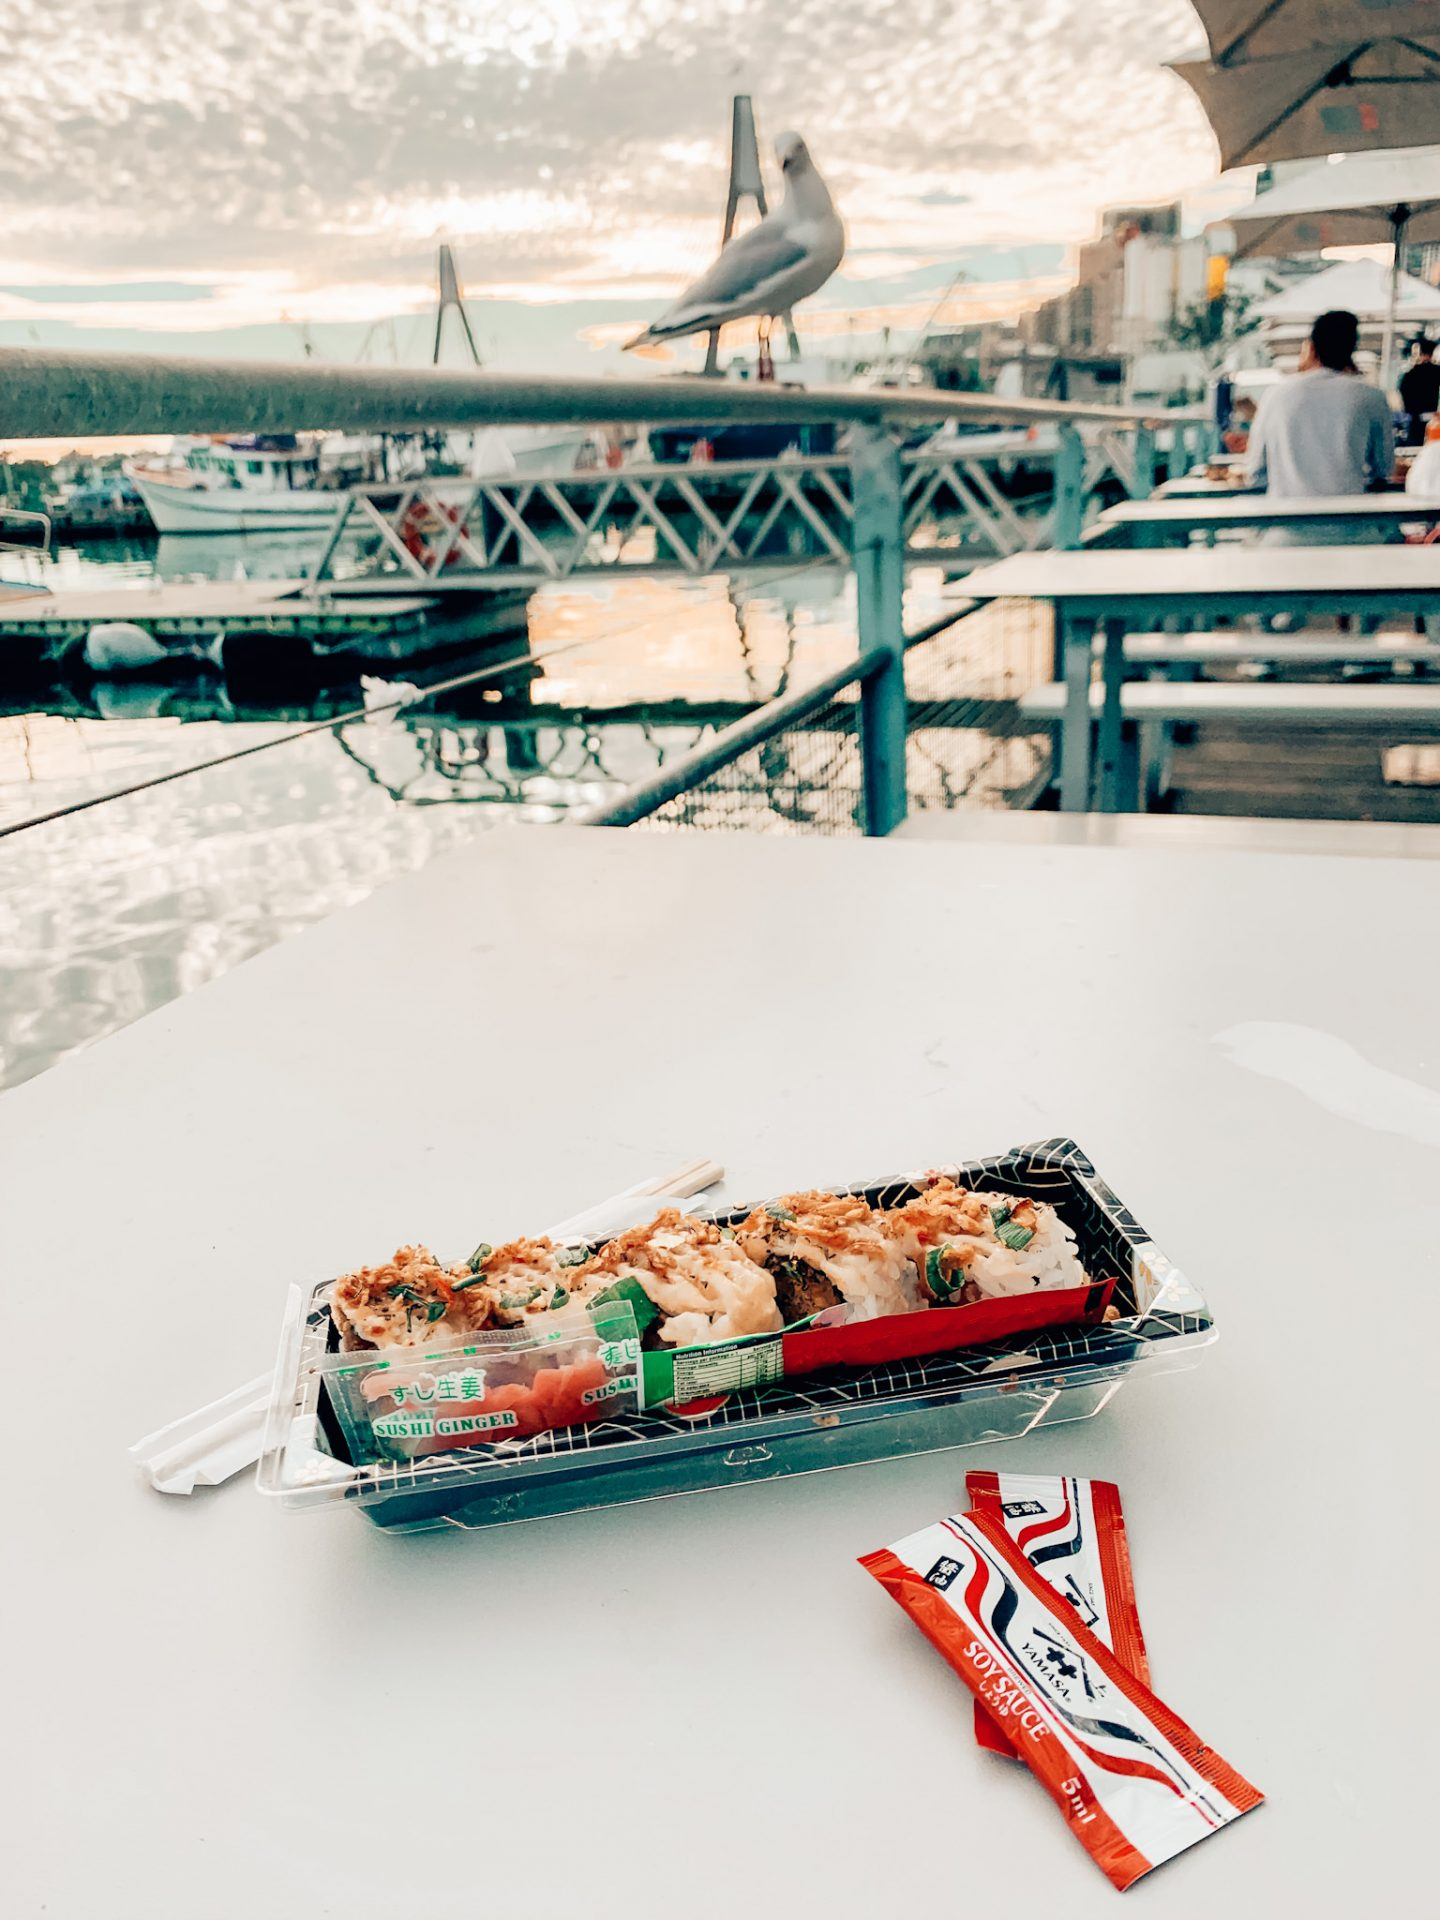 Sushi from Sydney's fish market